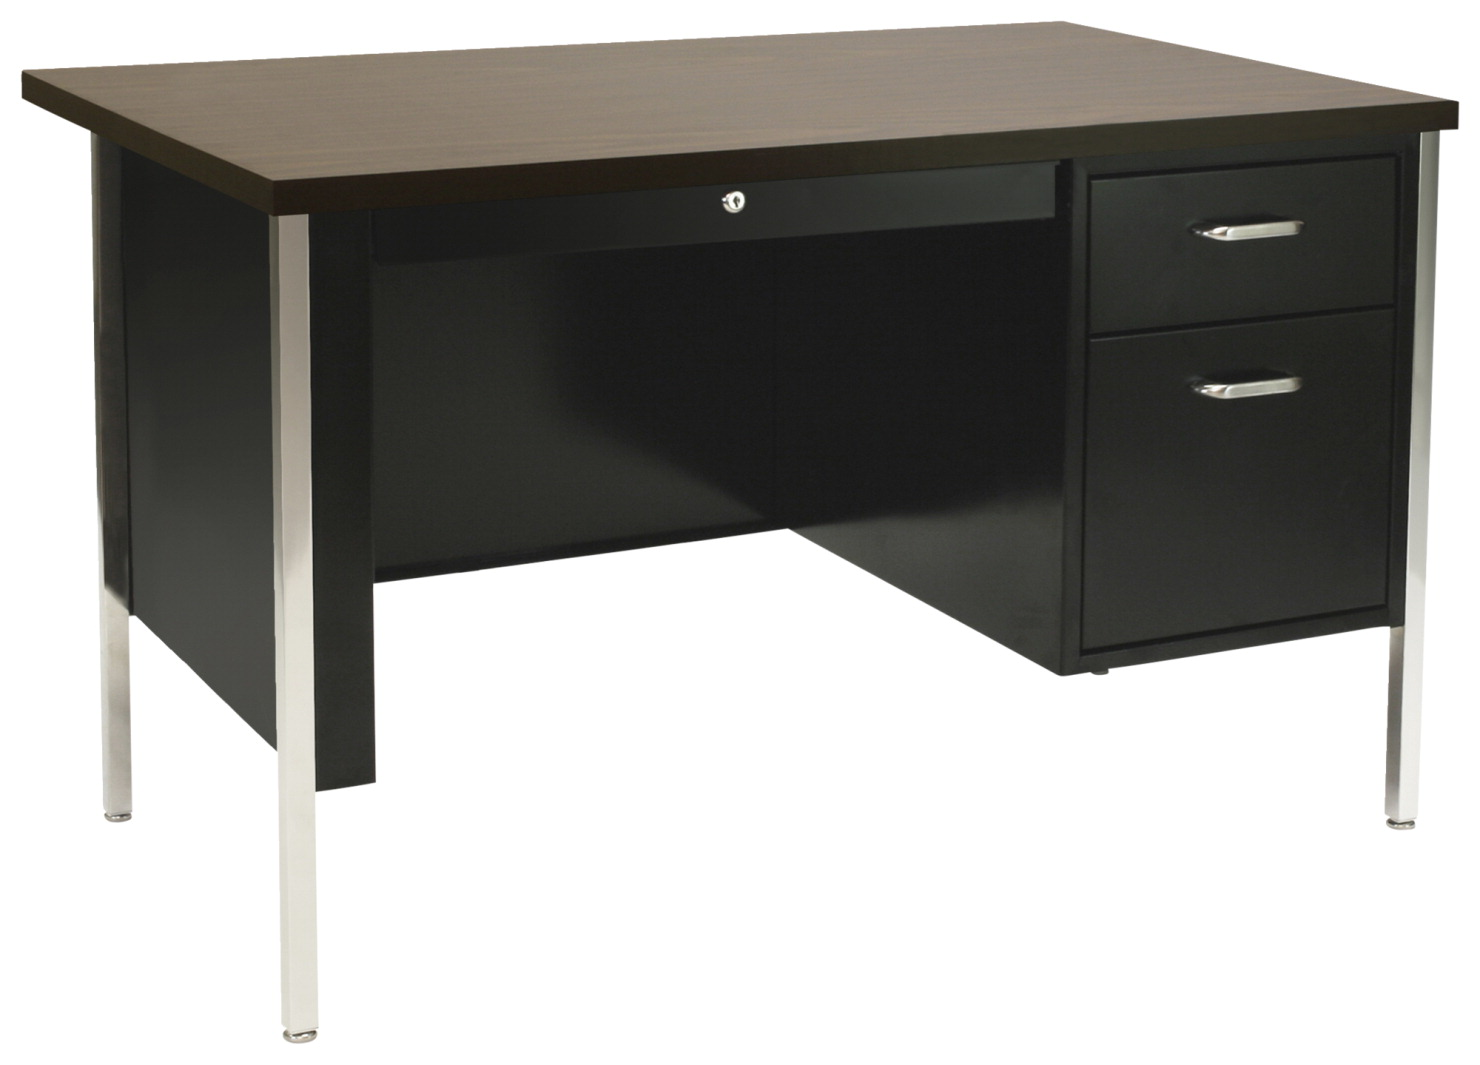 Sandusky Lee 500 Series Single Pedestal Steel Desk, 45 x 24 x 29-1/2 Inches, Various Options